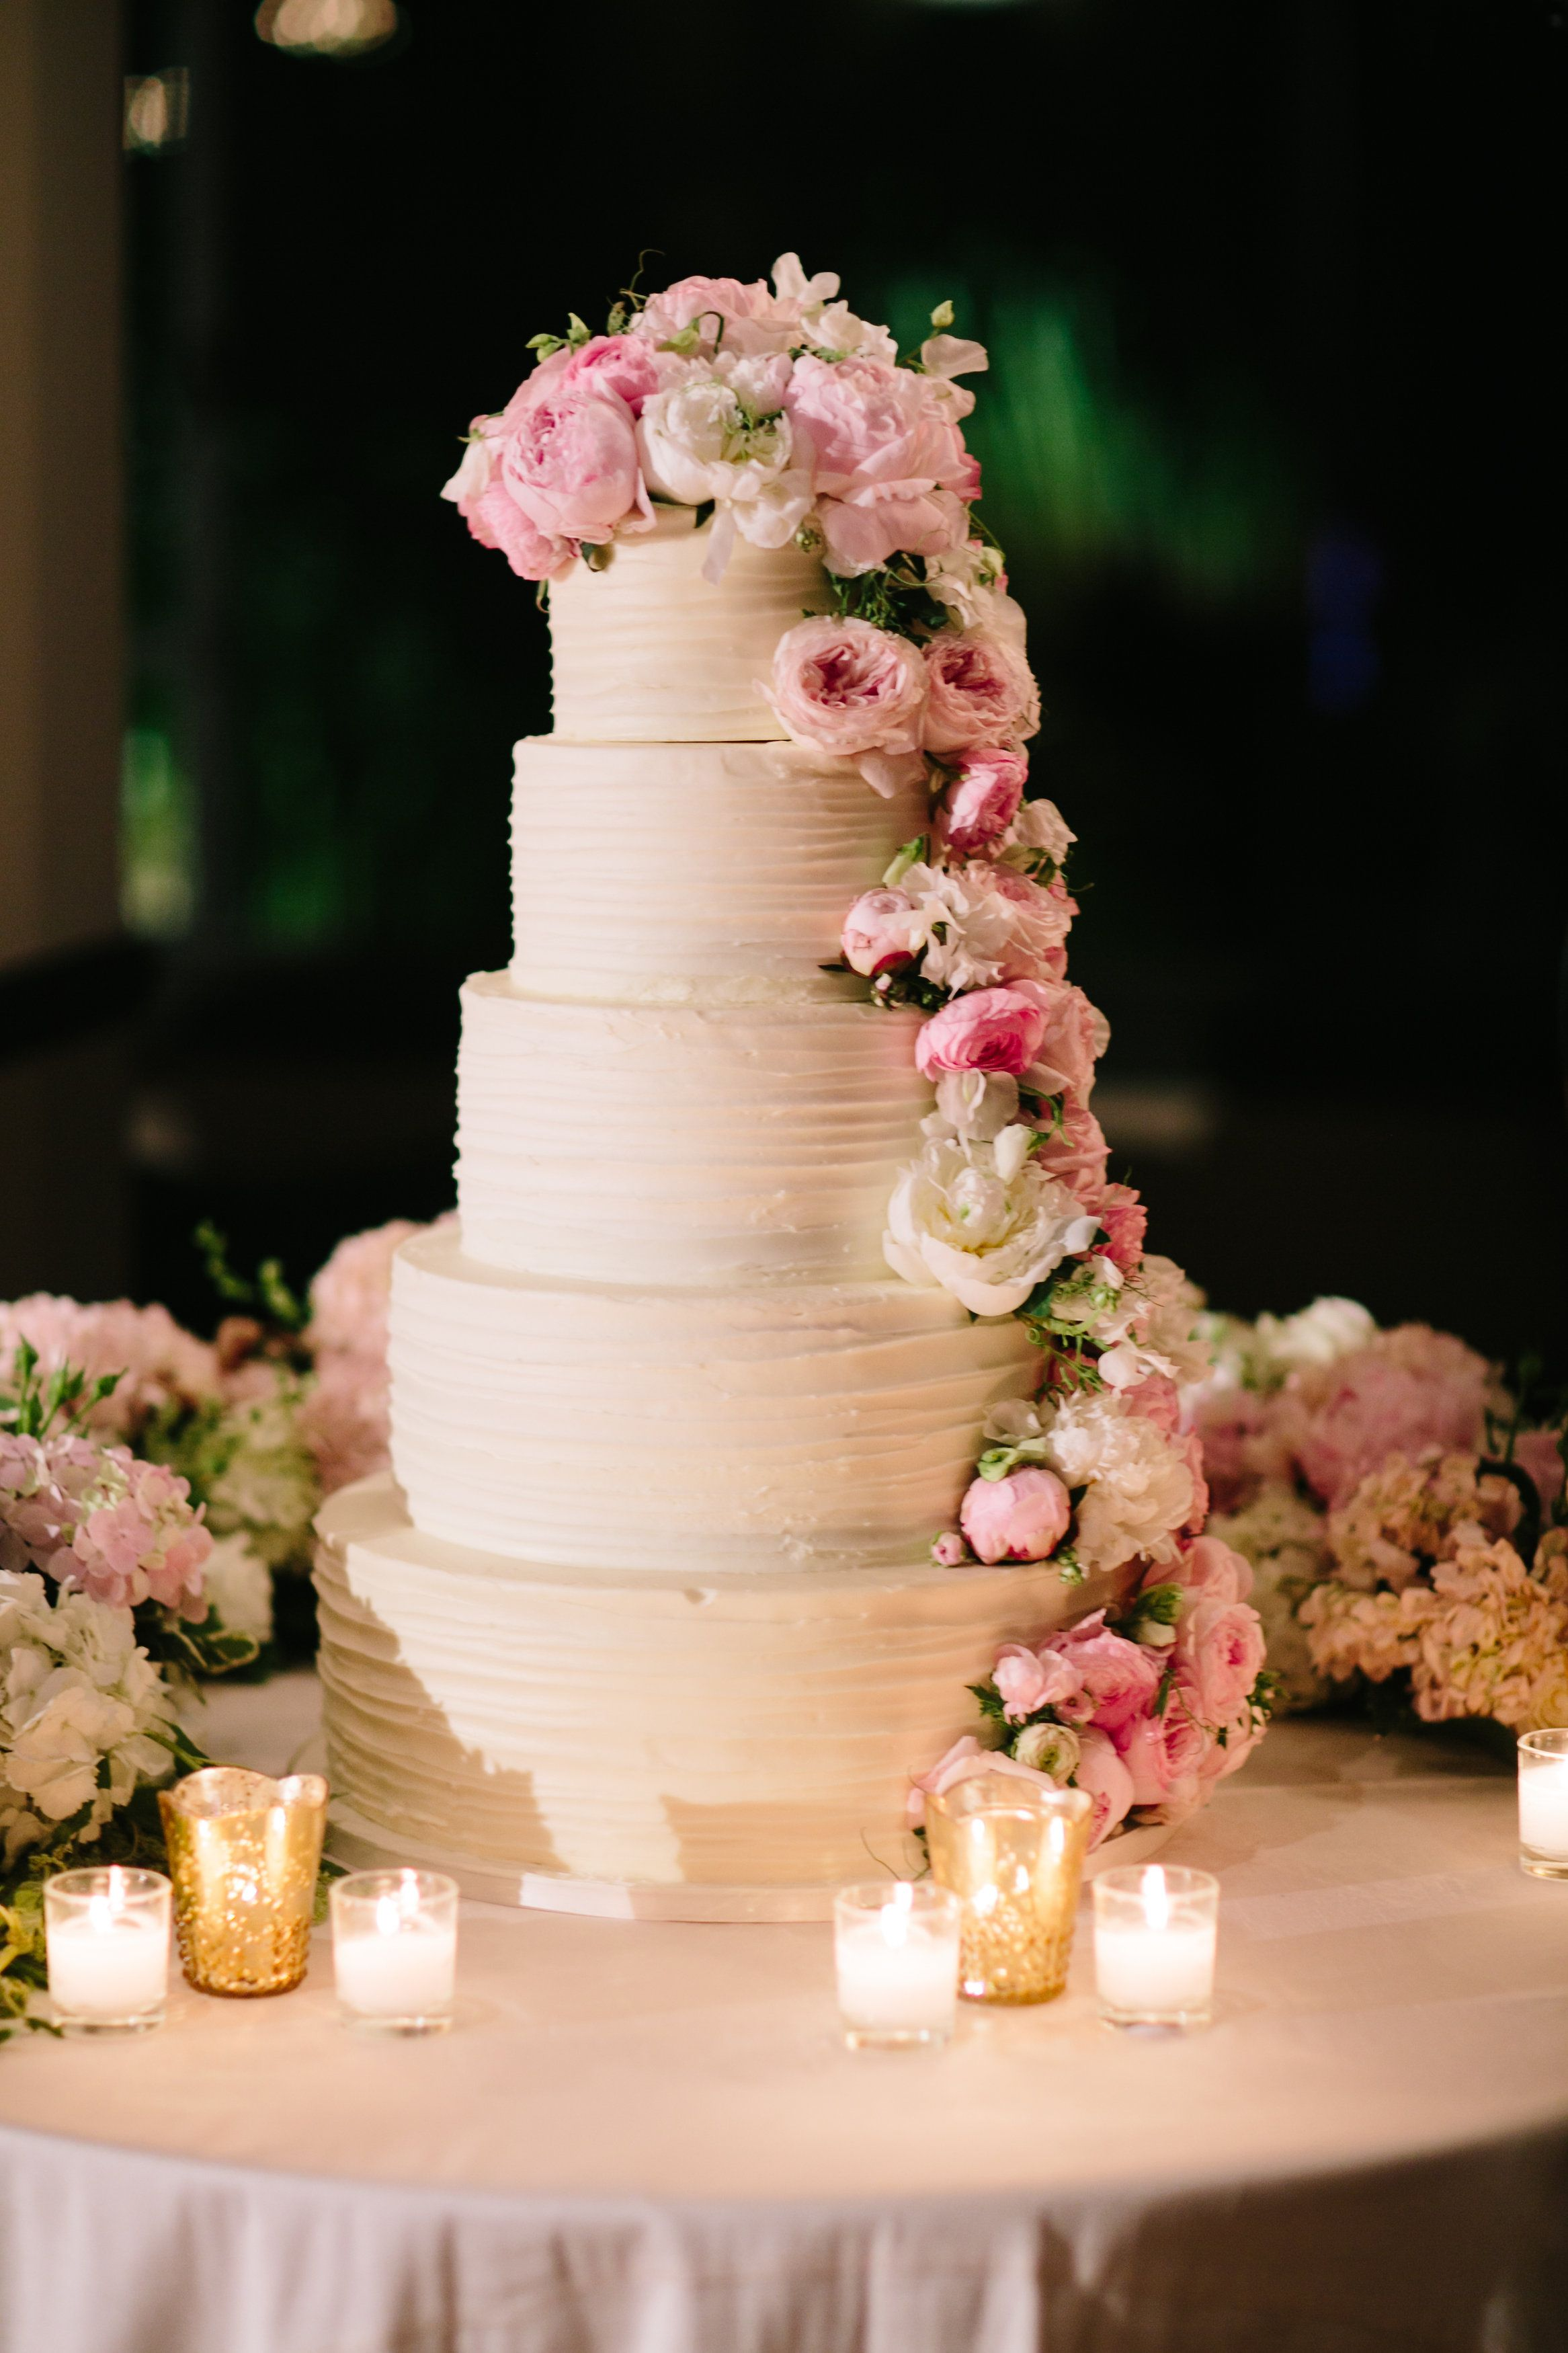 Five Tier Wedding Cake With Fresh Flowers Pink Peonies Wedding Cake Decorations Flowers Beach Theme Wedding Cakes Wedding Cake Toppers